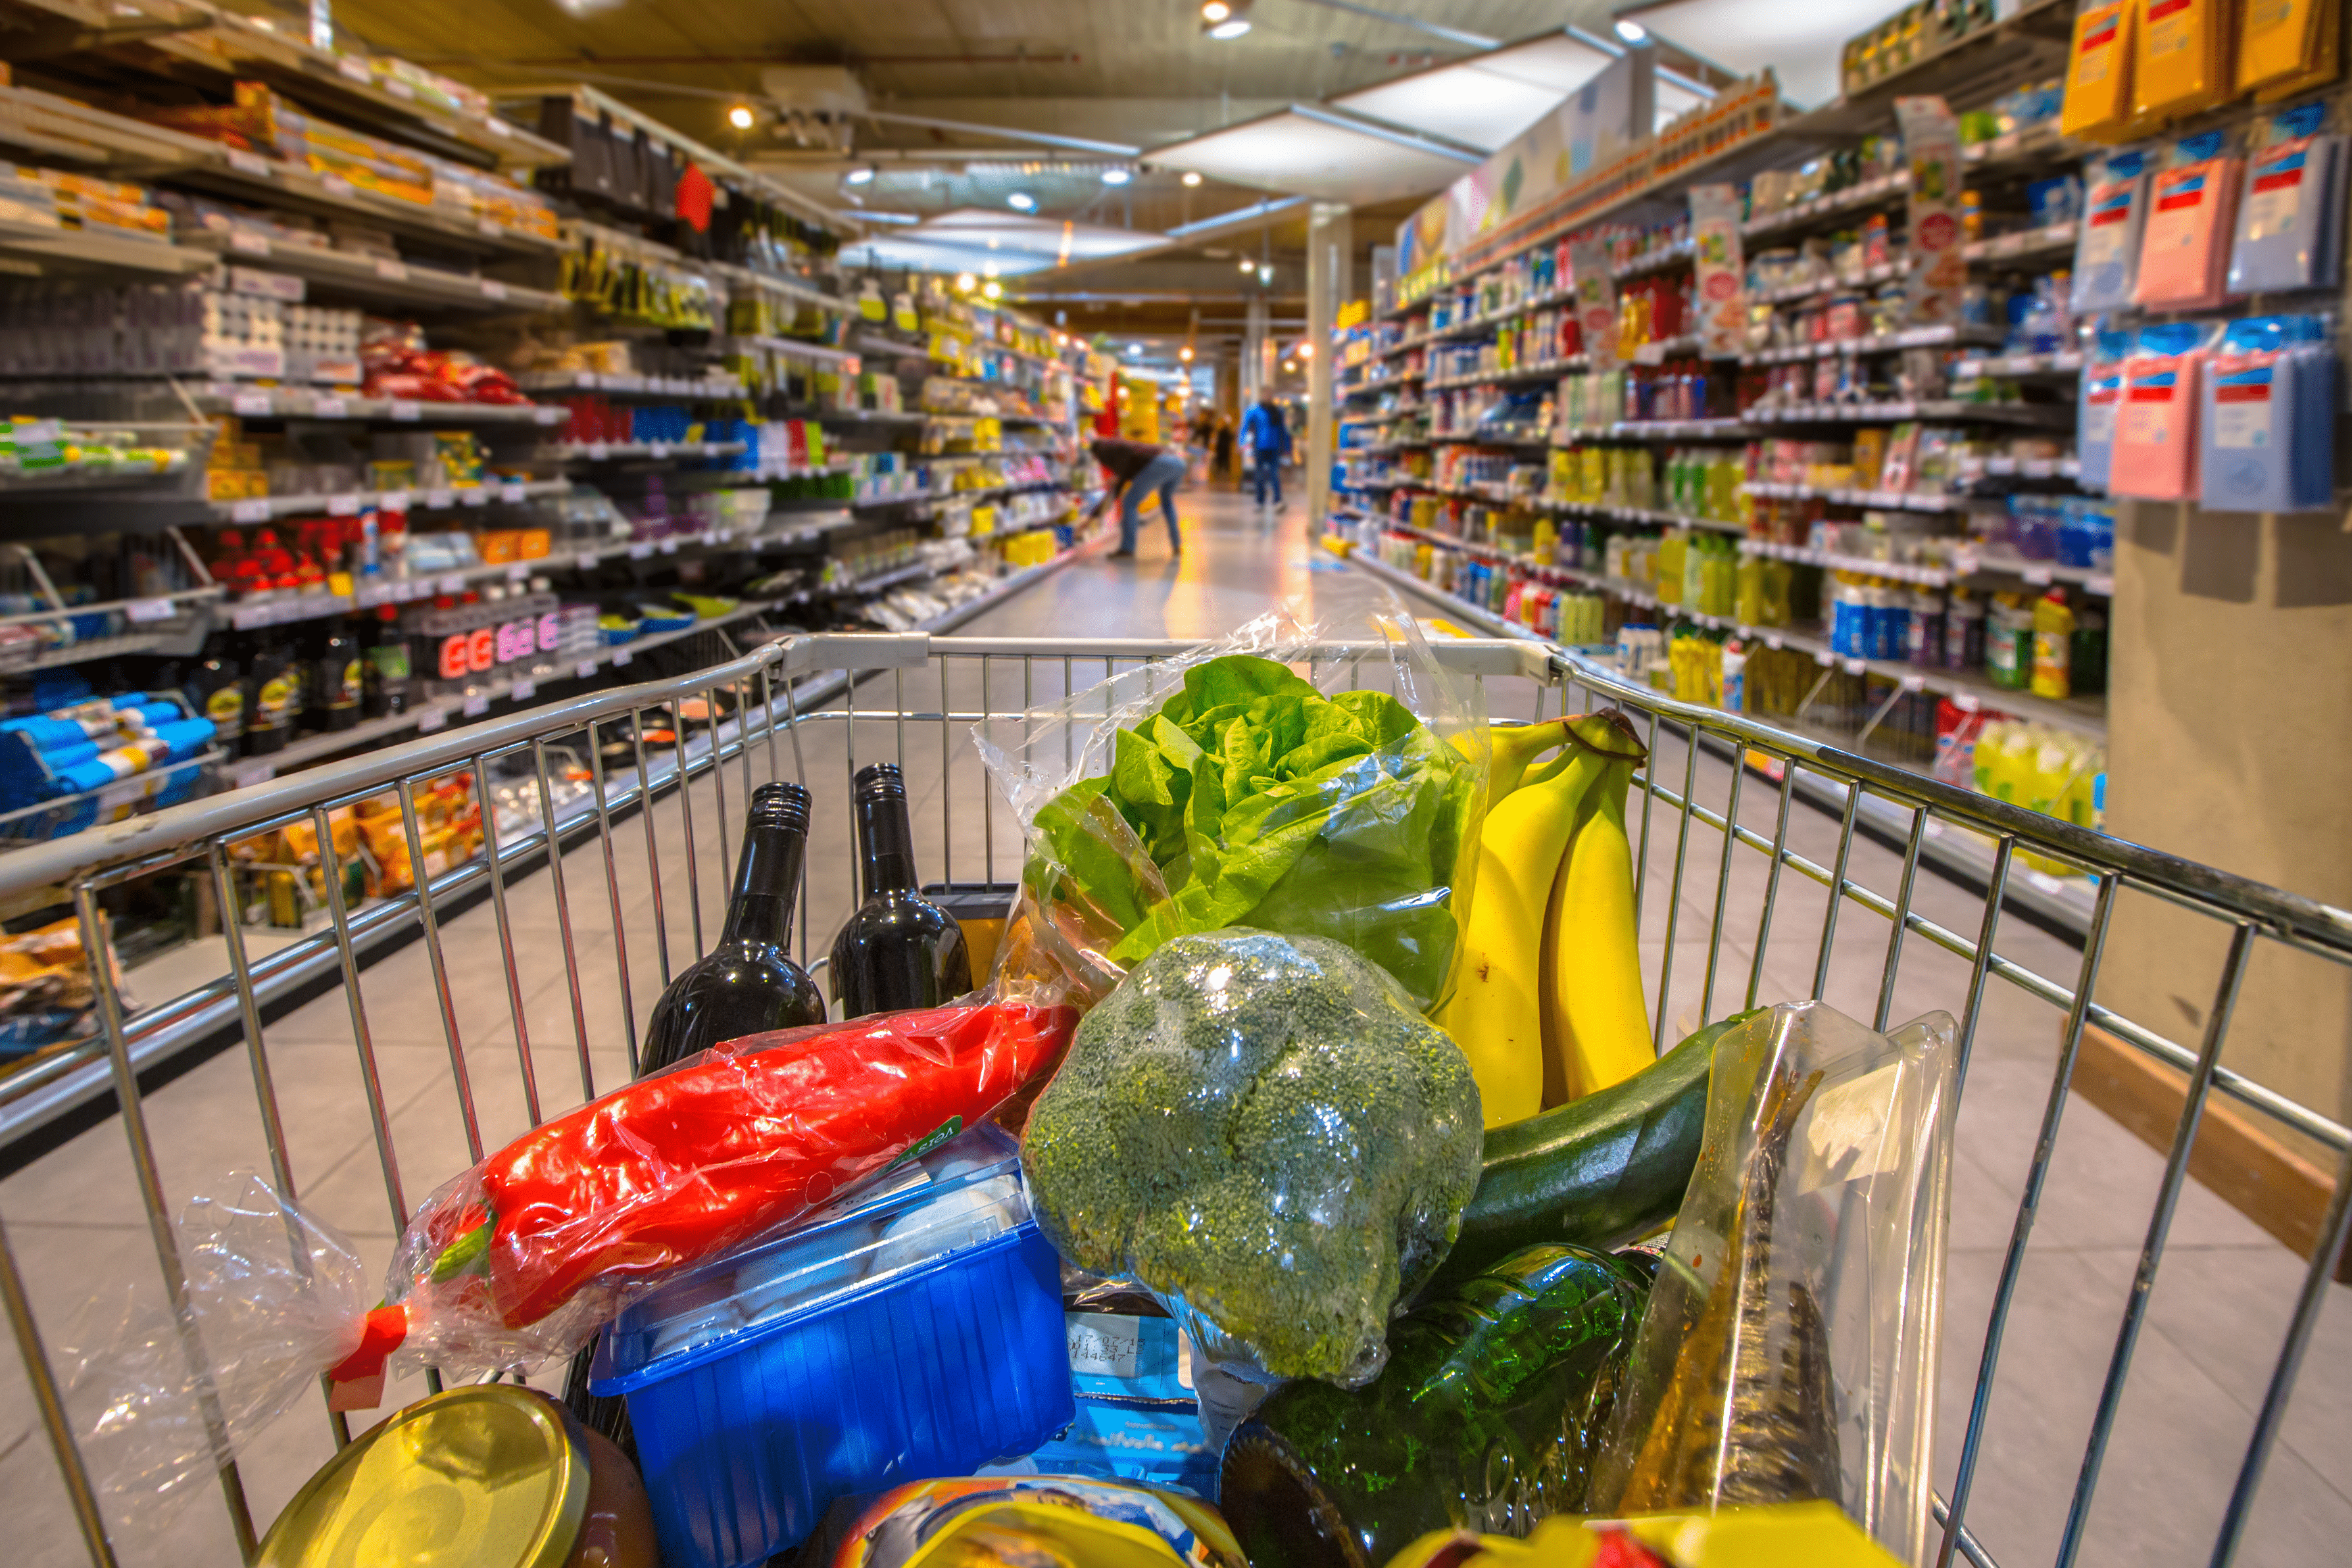 Measuring the Impact of COVID-19: Grocery